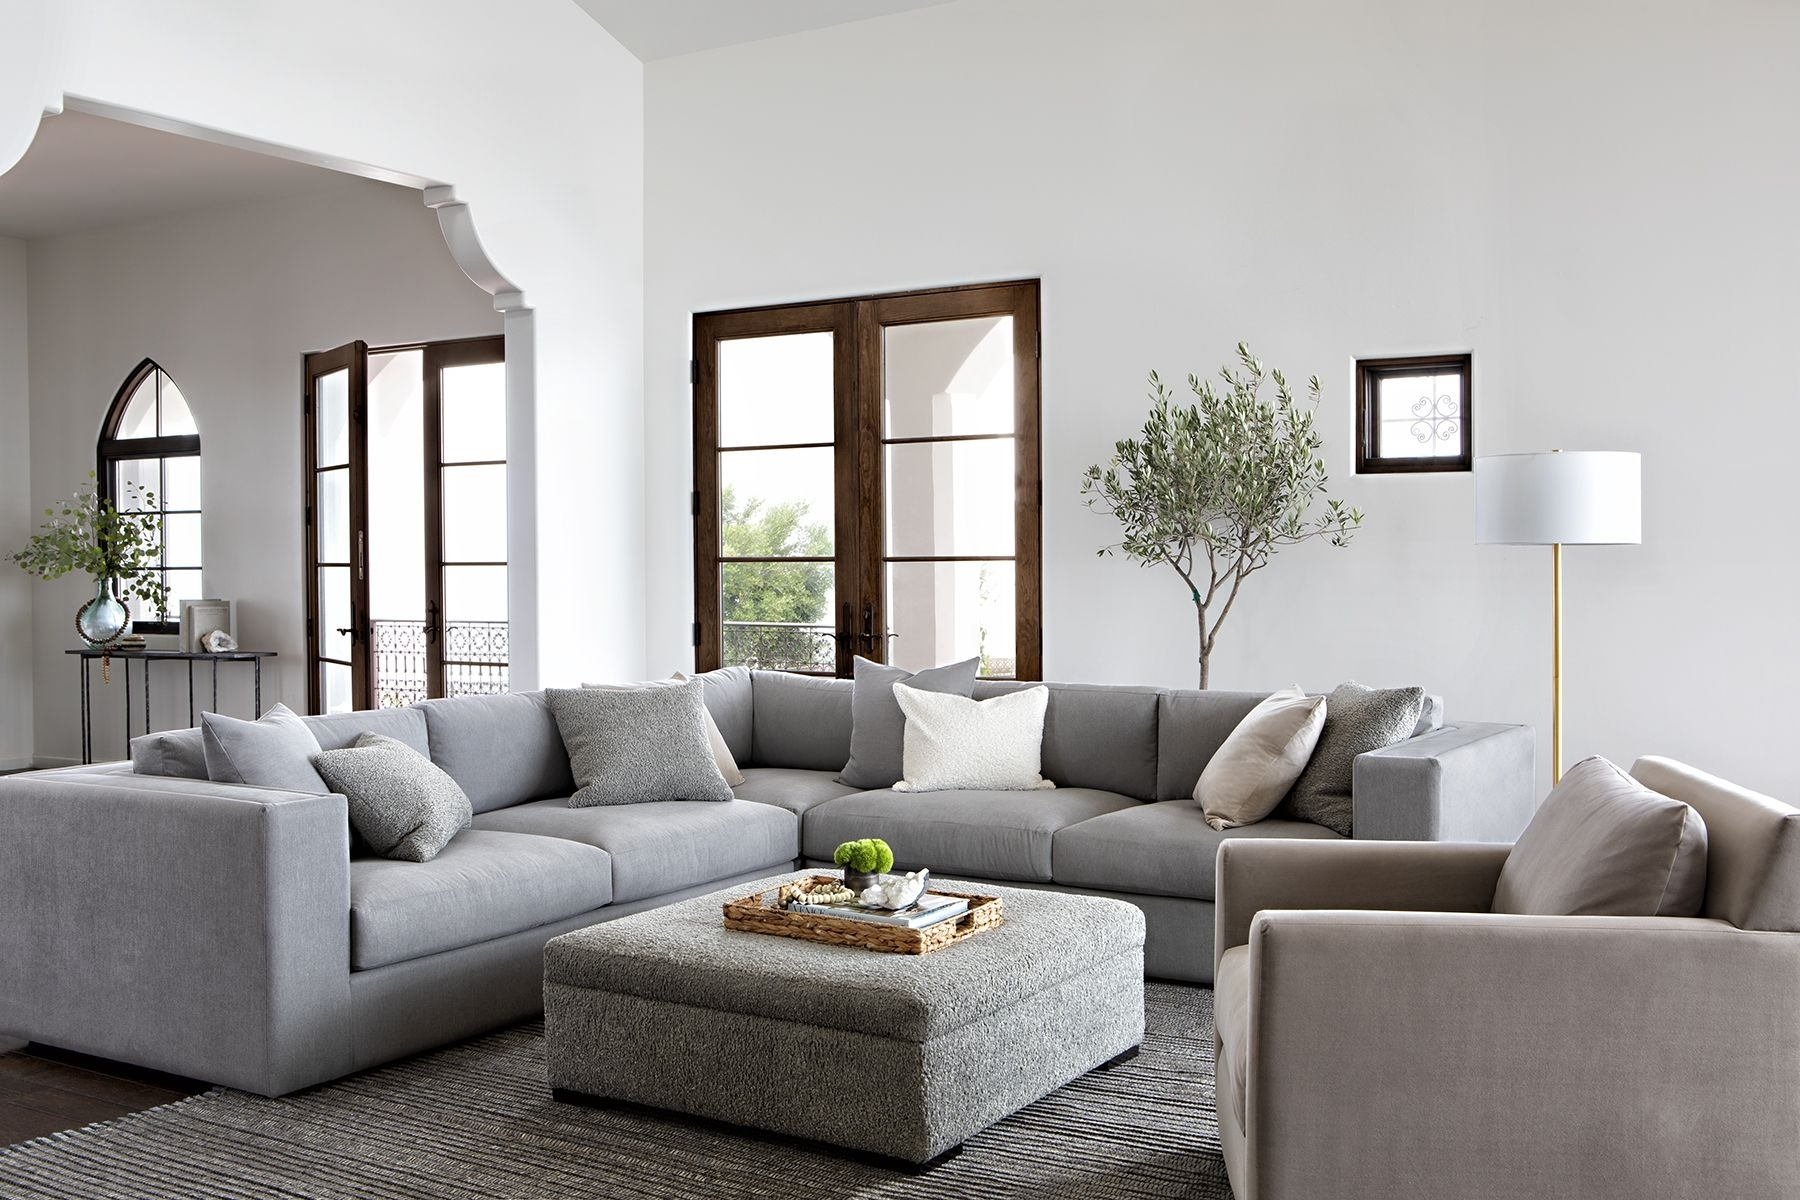 Nate Berkus & Jeremiah Brent's Newest Affordable Collection | Rue With Regard To Whitley 3 Piece Sectionals By Nate Berkus And Jeremiah Brent (Image 10 of 25)